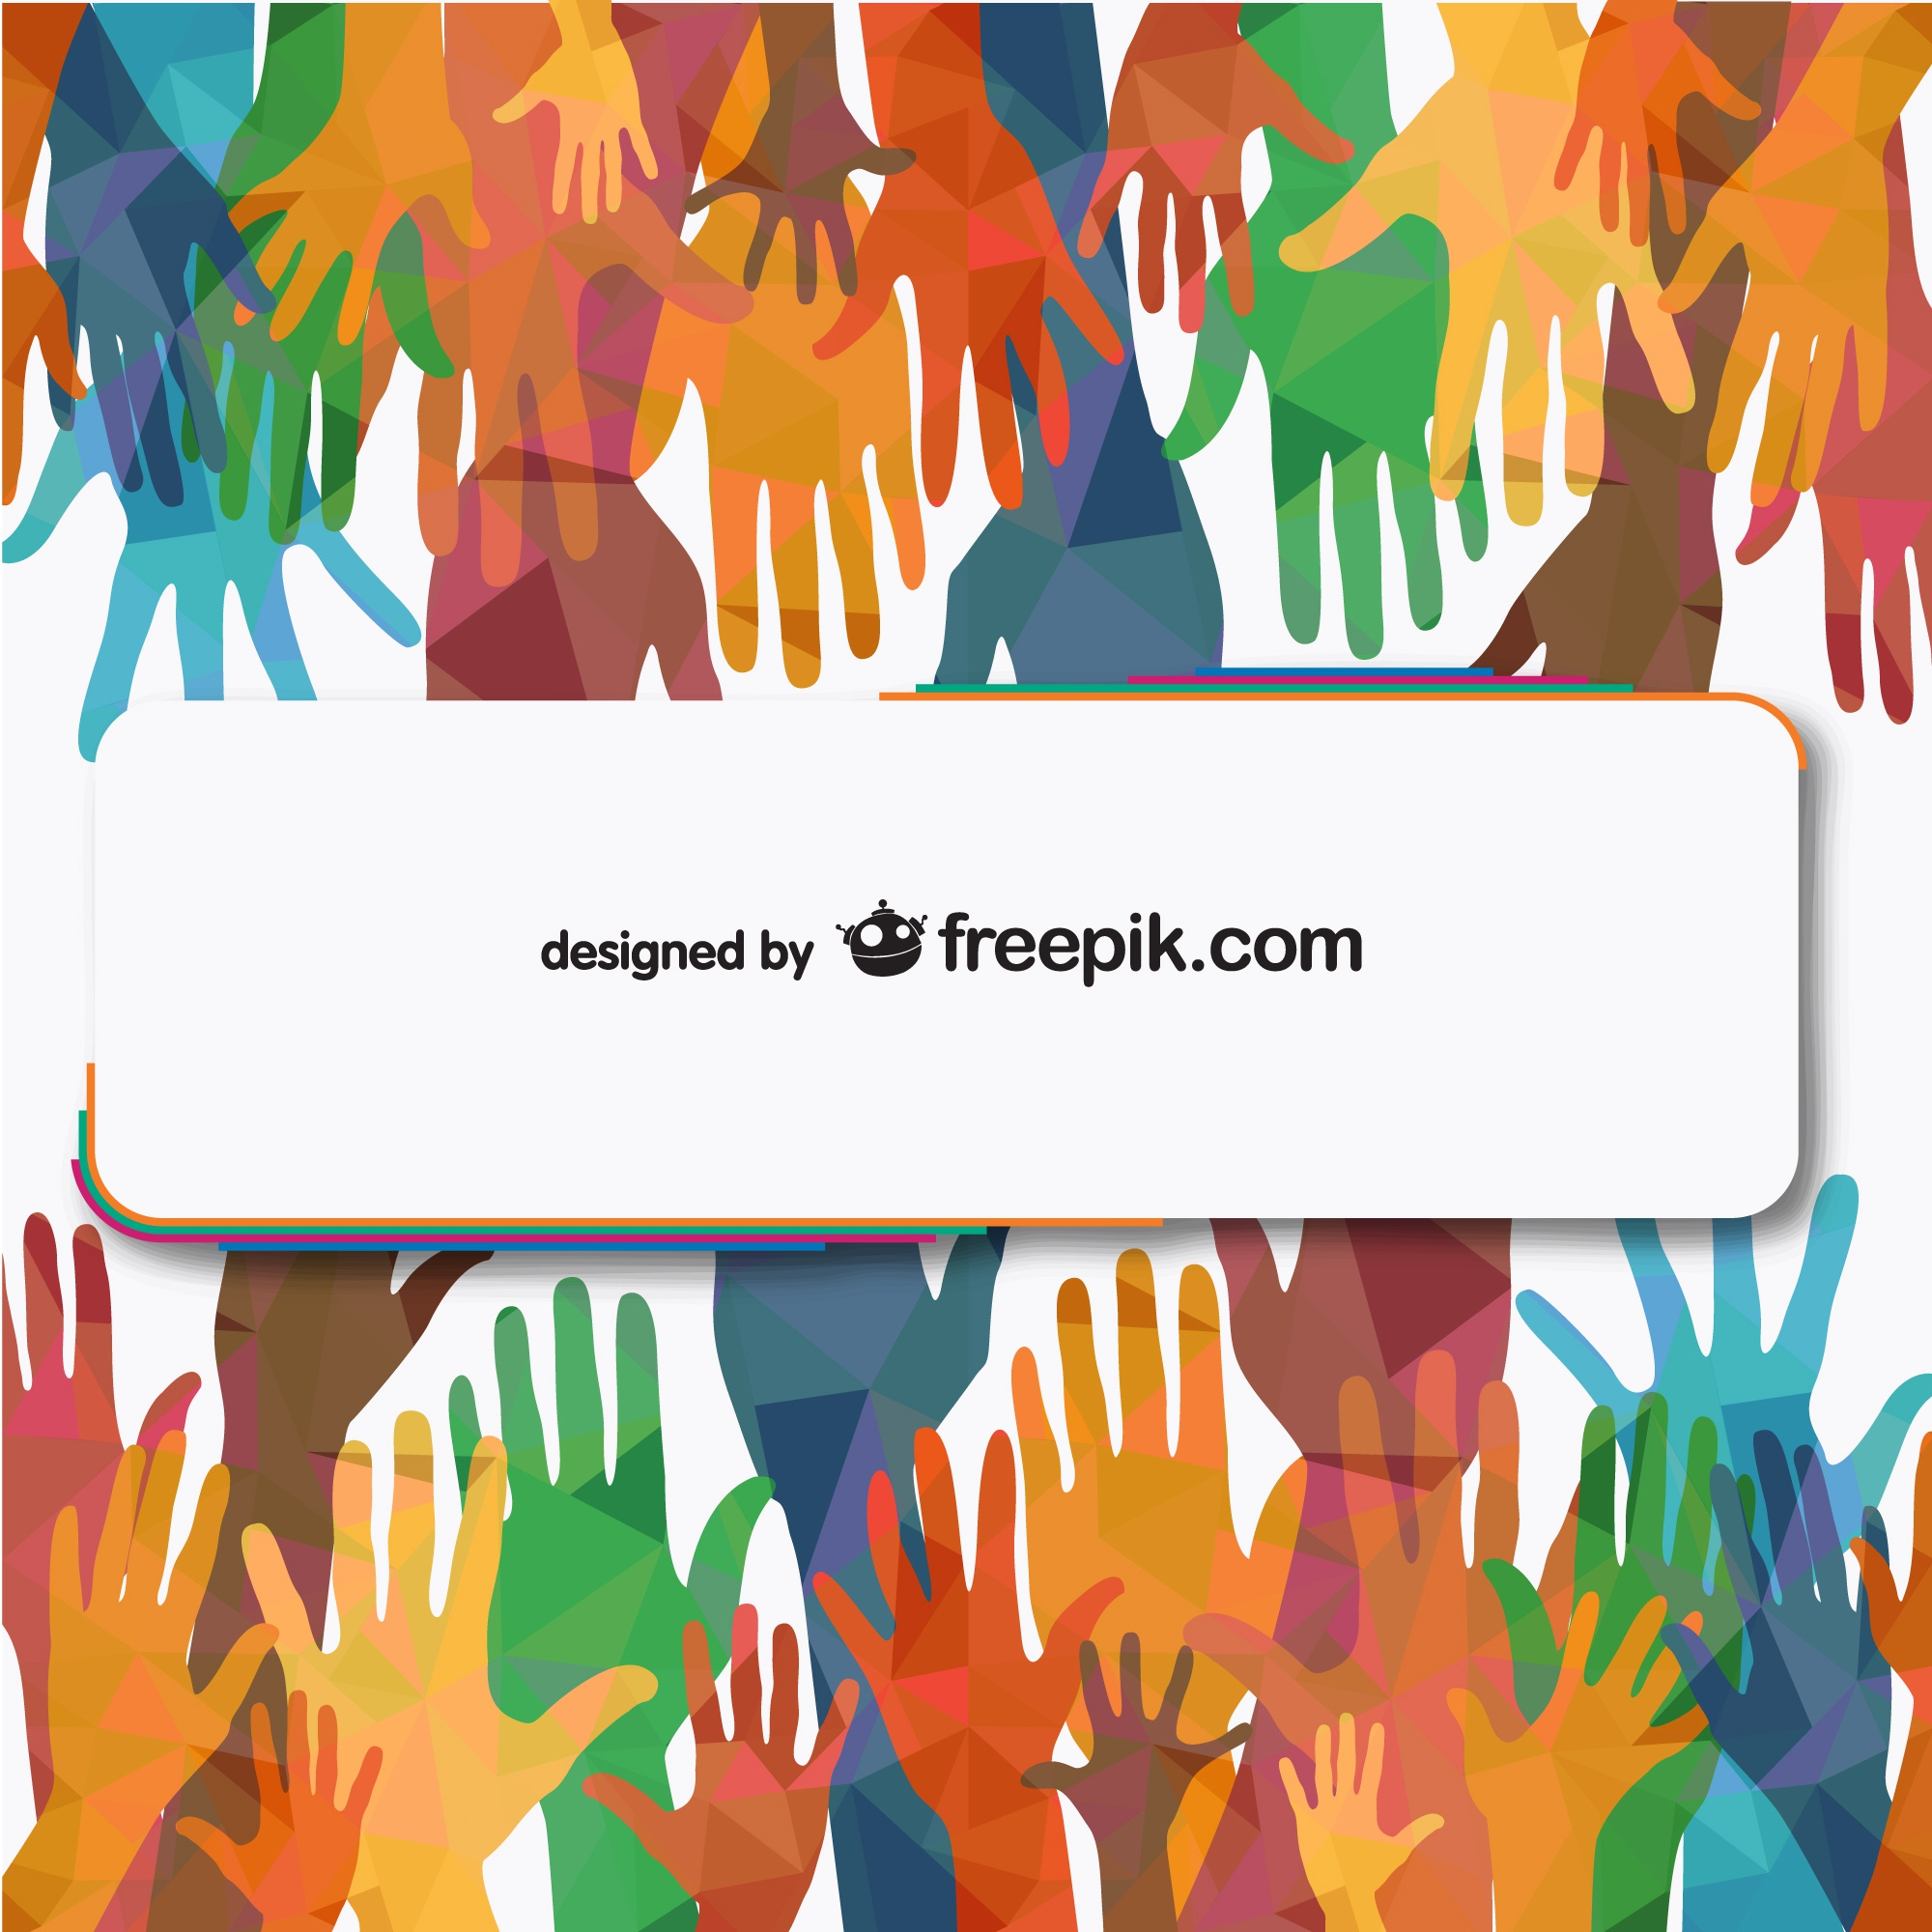 Vector people hands reaching free illustration